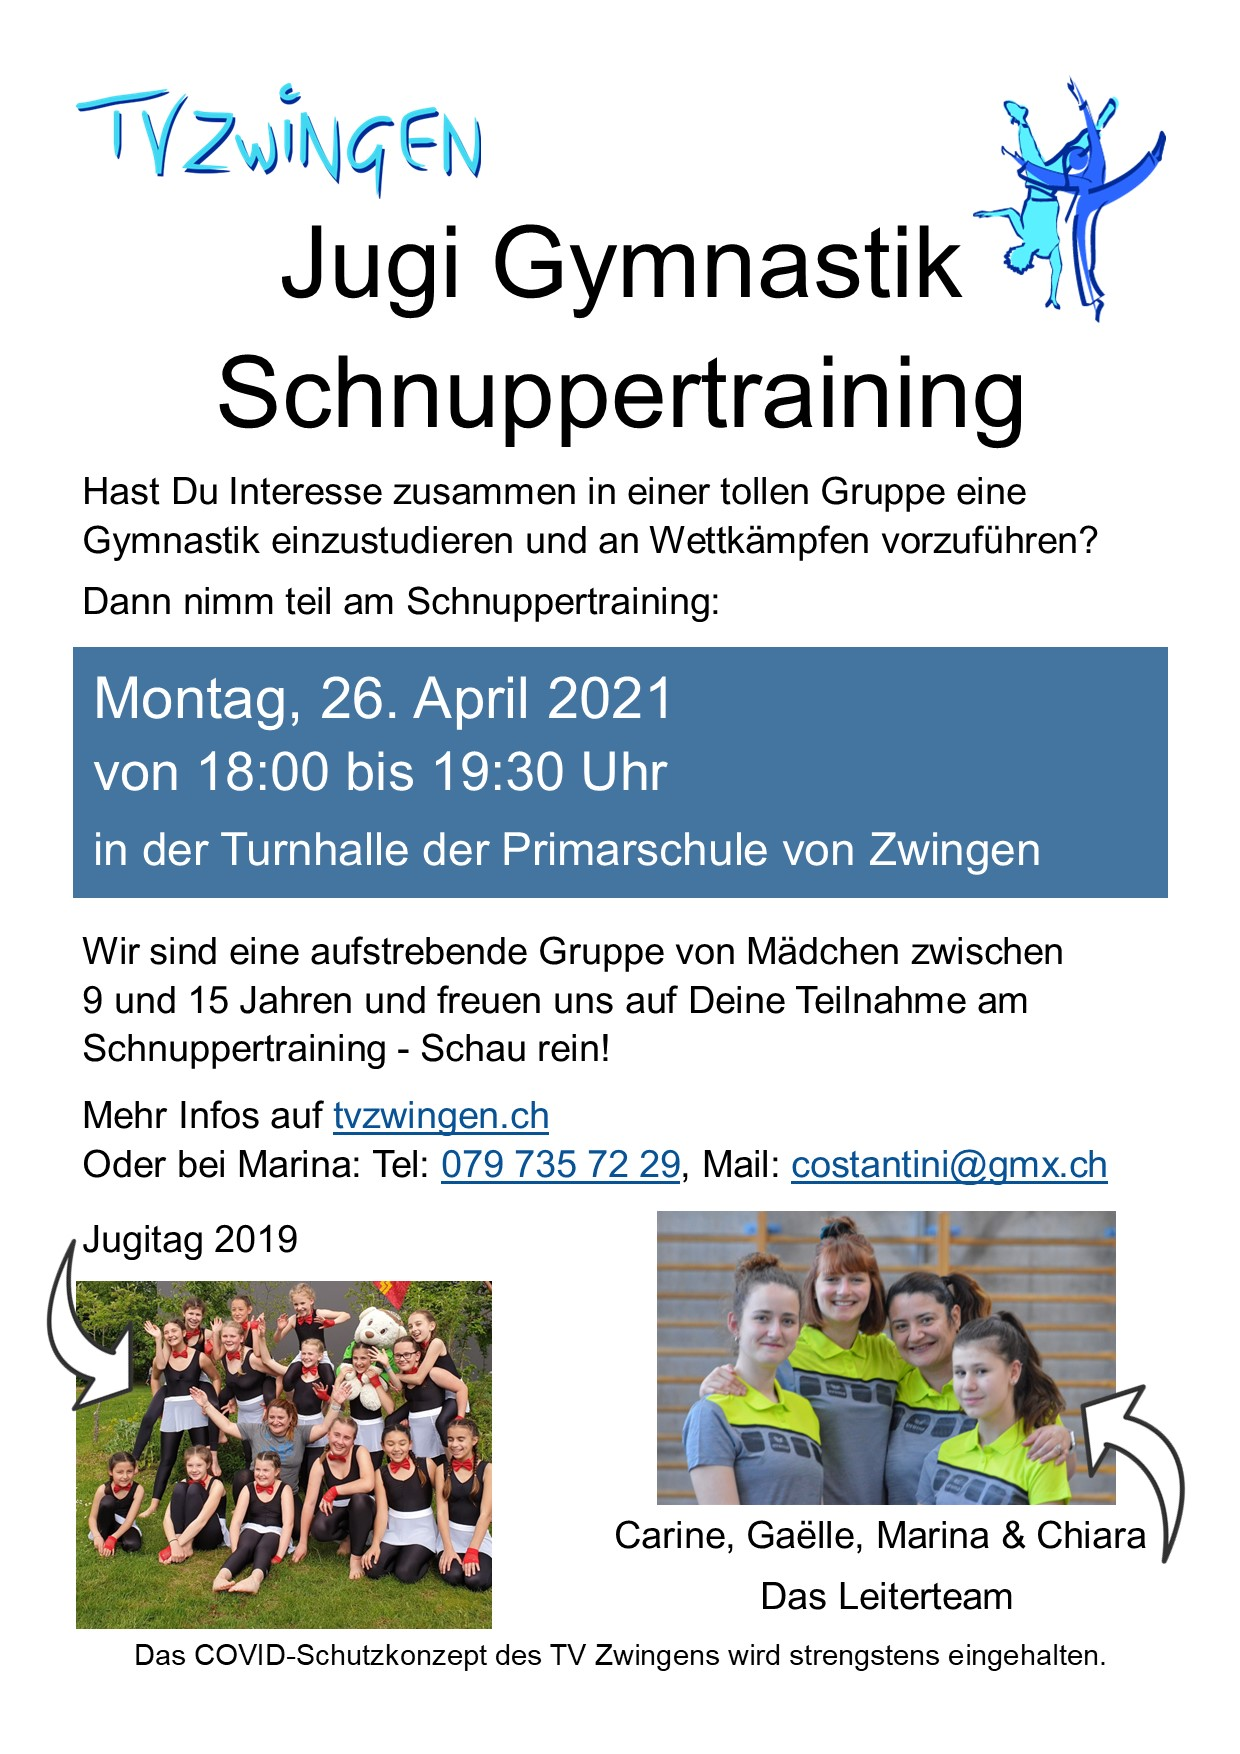 Schnuppertraining 2021 Gymnastik Jugi